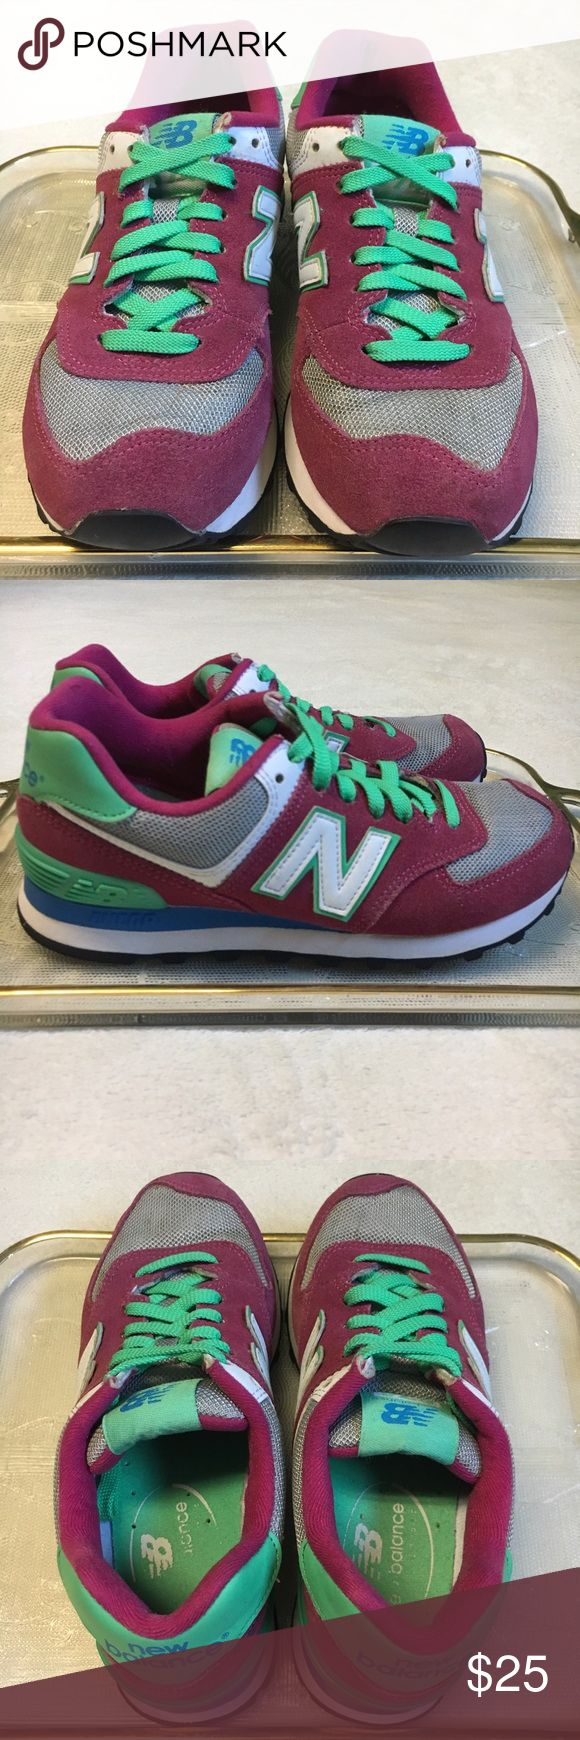 30% Off New Balance 574 New Balance 574 Sneakers Shoes size: 6US, 23cm Bundle 3 or more items and get a 30% discount. Or best offer New Balance Shoes Athletic Shoes